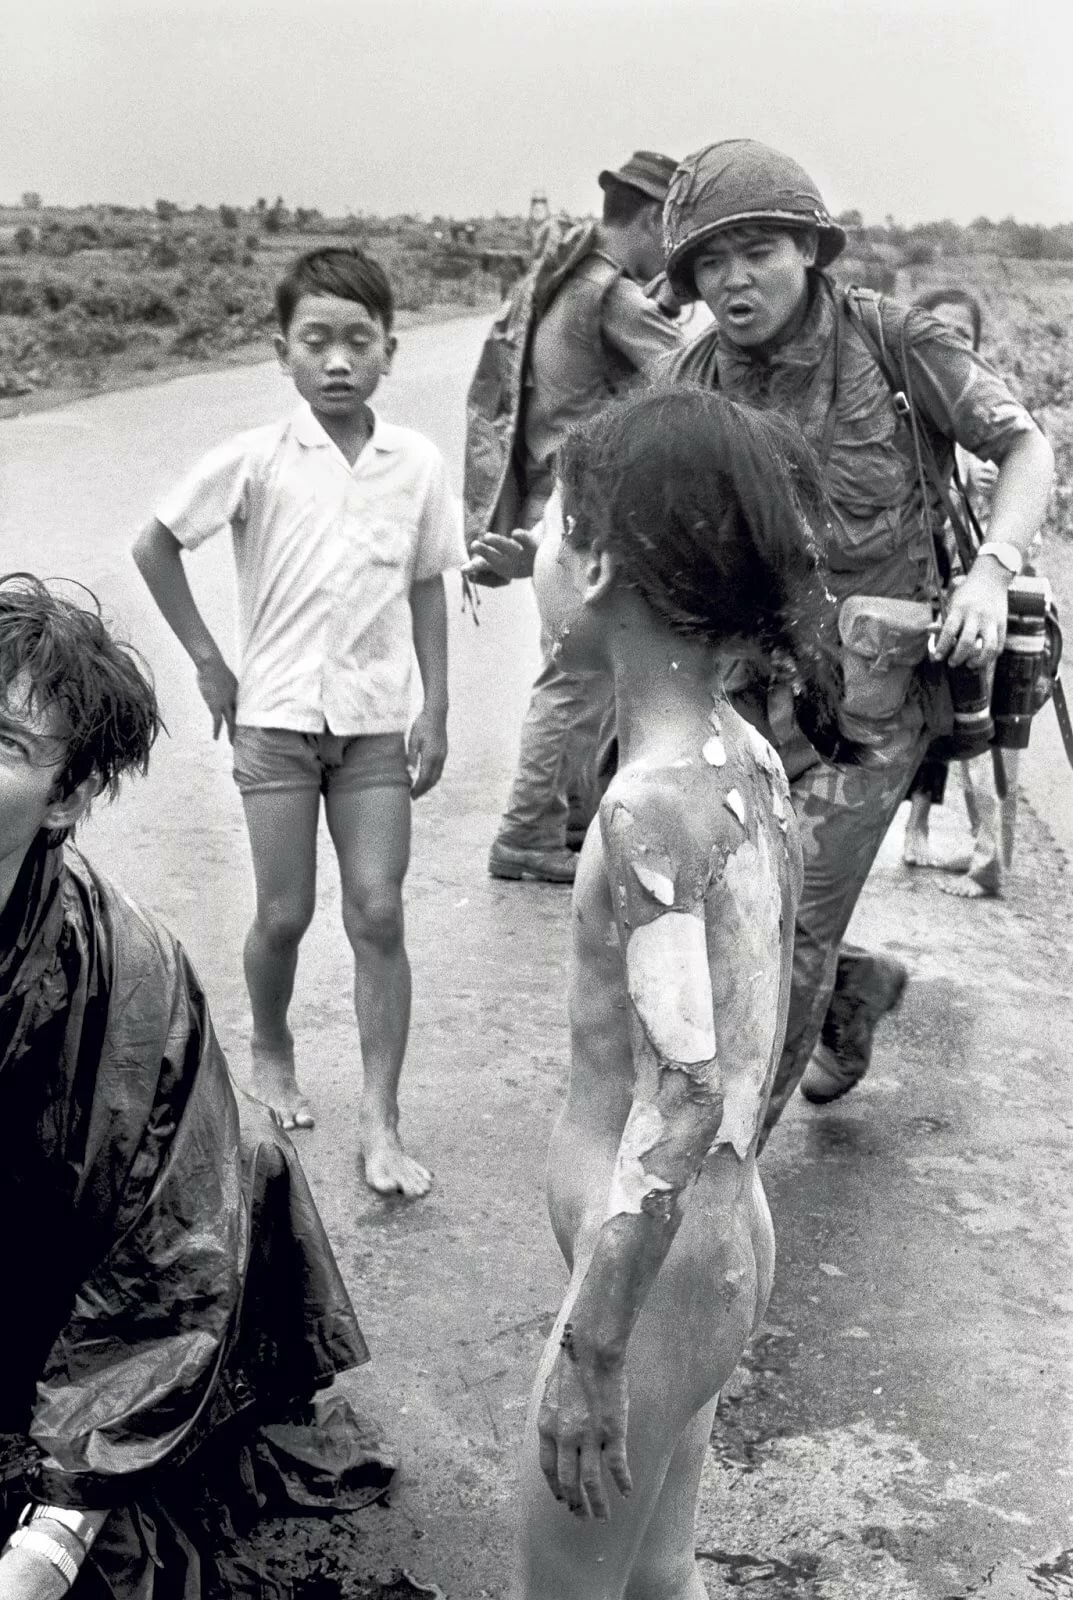 Facebook backtracks to allow iconic vietnam war photo of child napalm victims